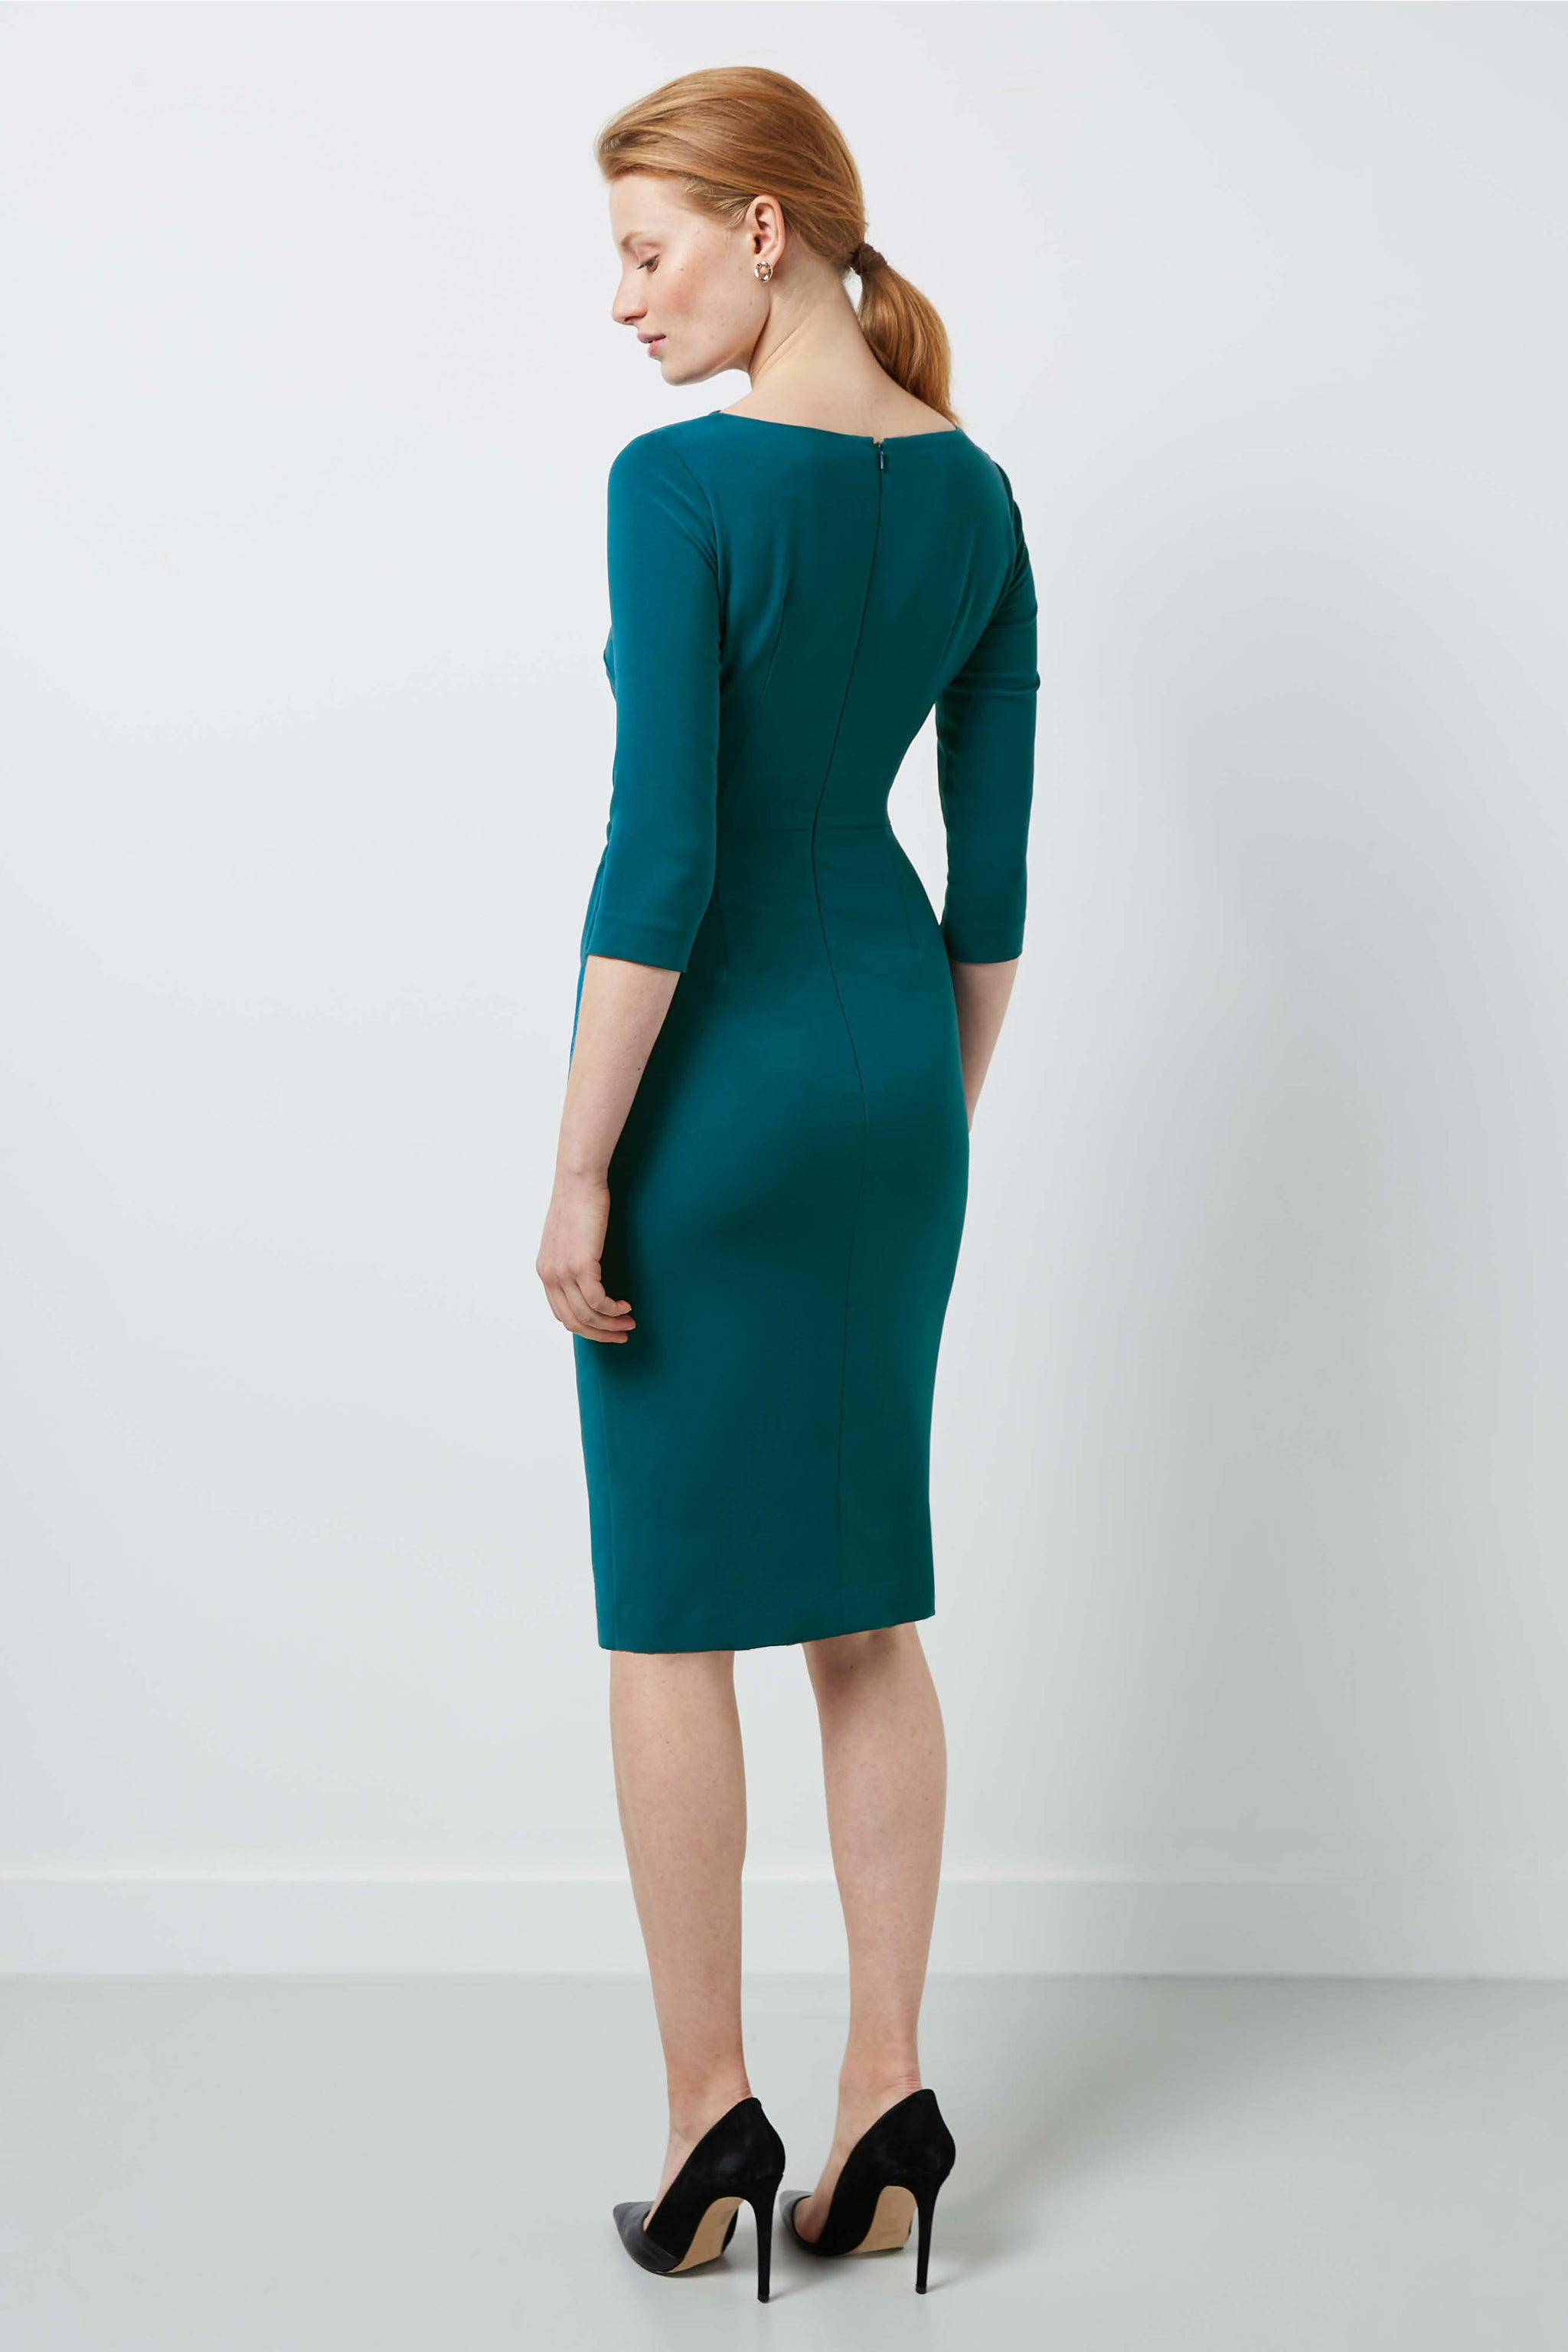 Tiverton Ocean Dress